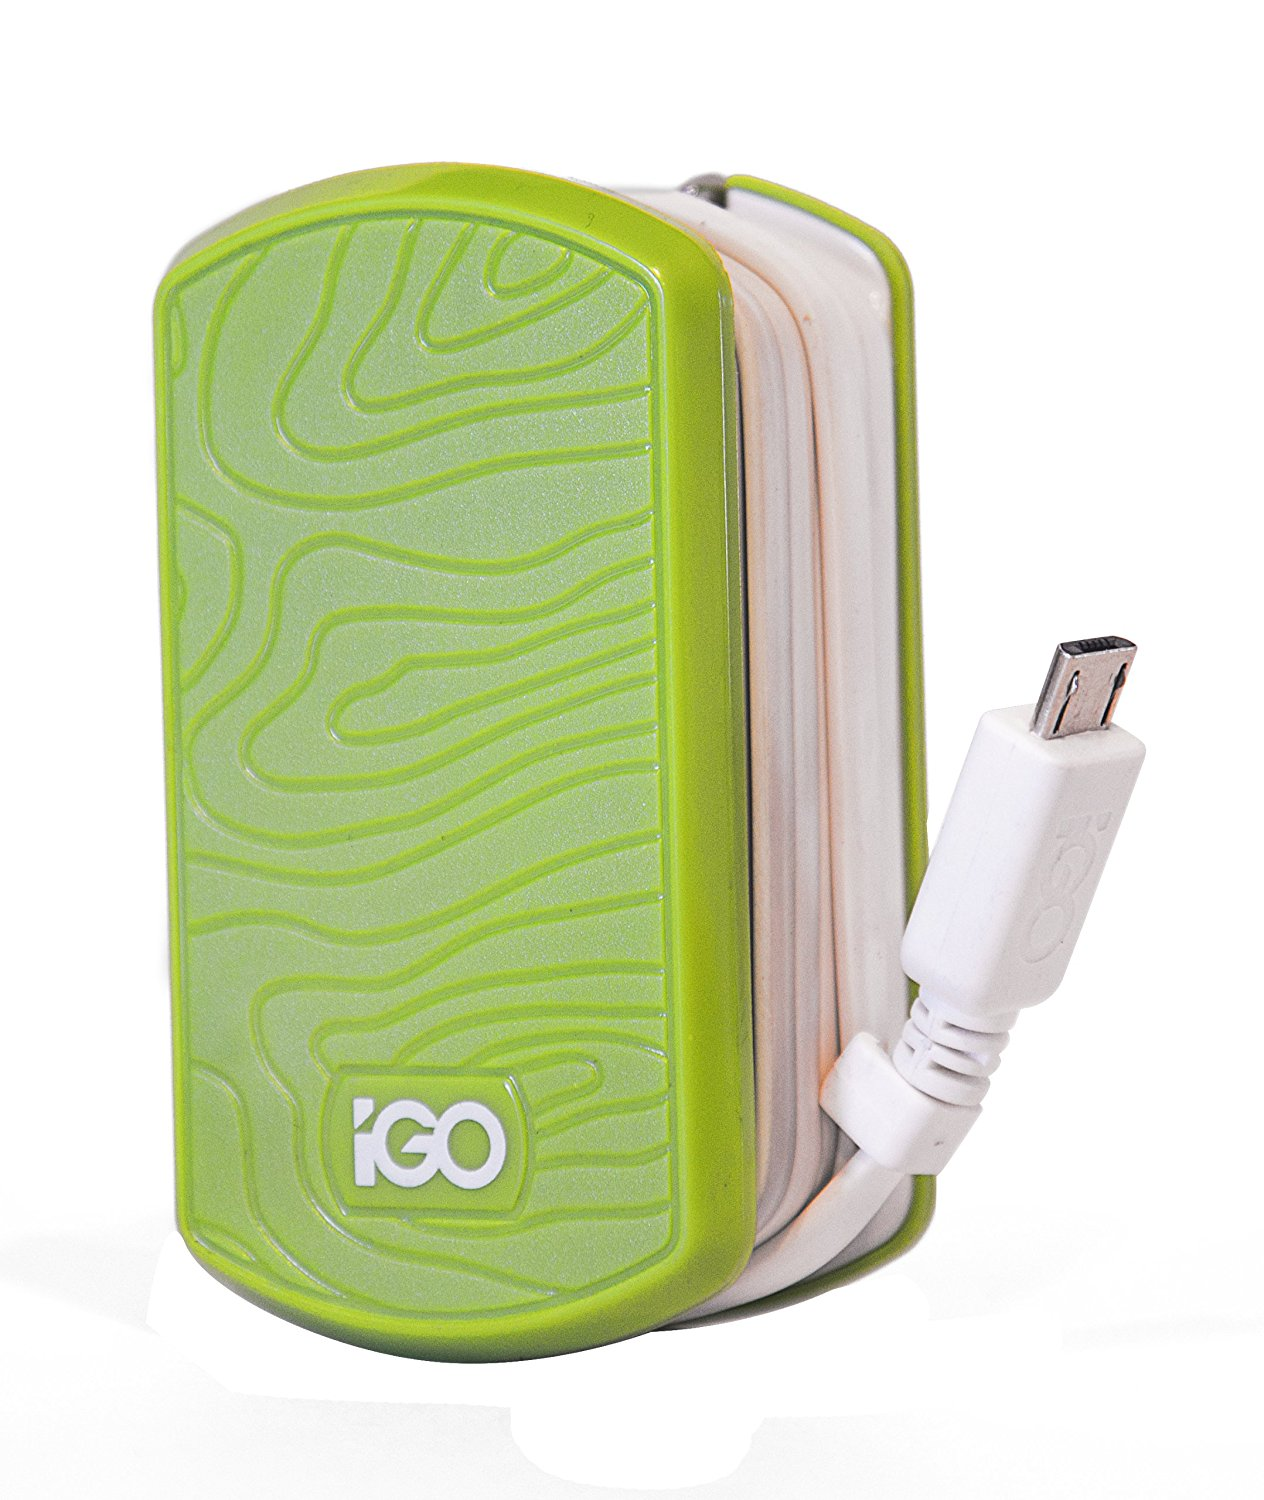 iGo-by-Incipio-Smartphone-Wall-Charger-for-Micro-USB-Devices